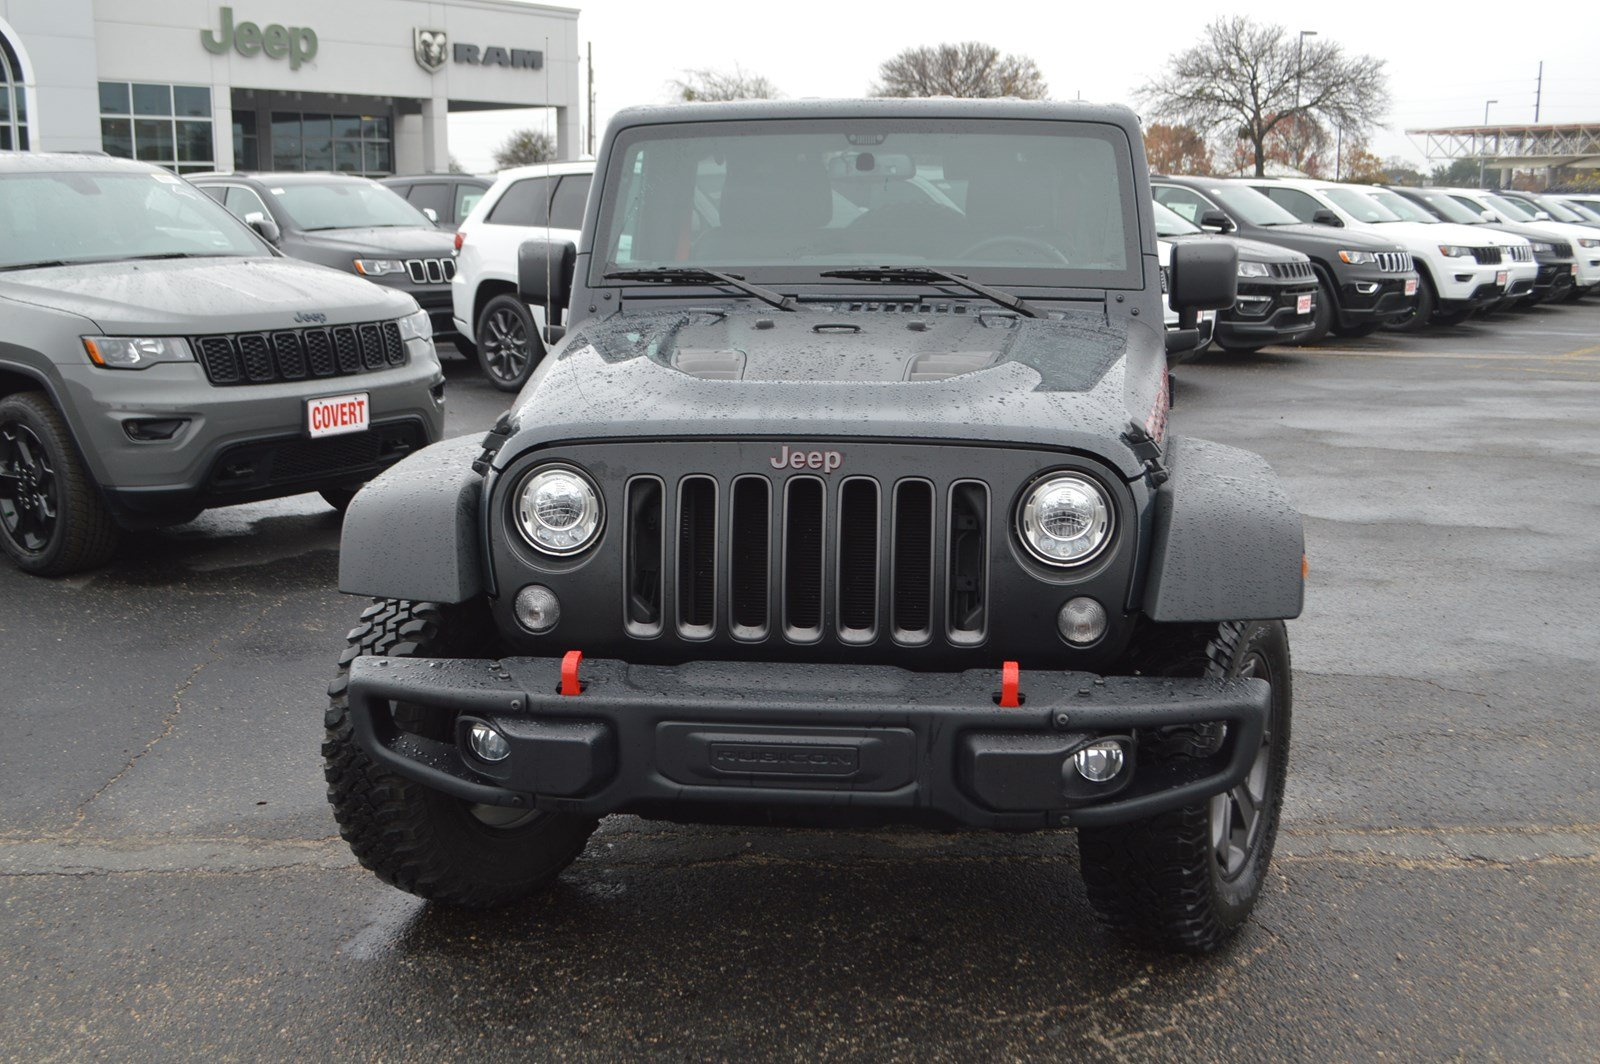 Certified Pre-Owned 2017 Jeep Wrangler Unlimited Rubicon Recon